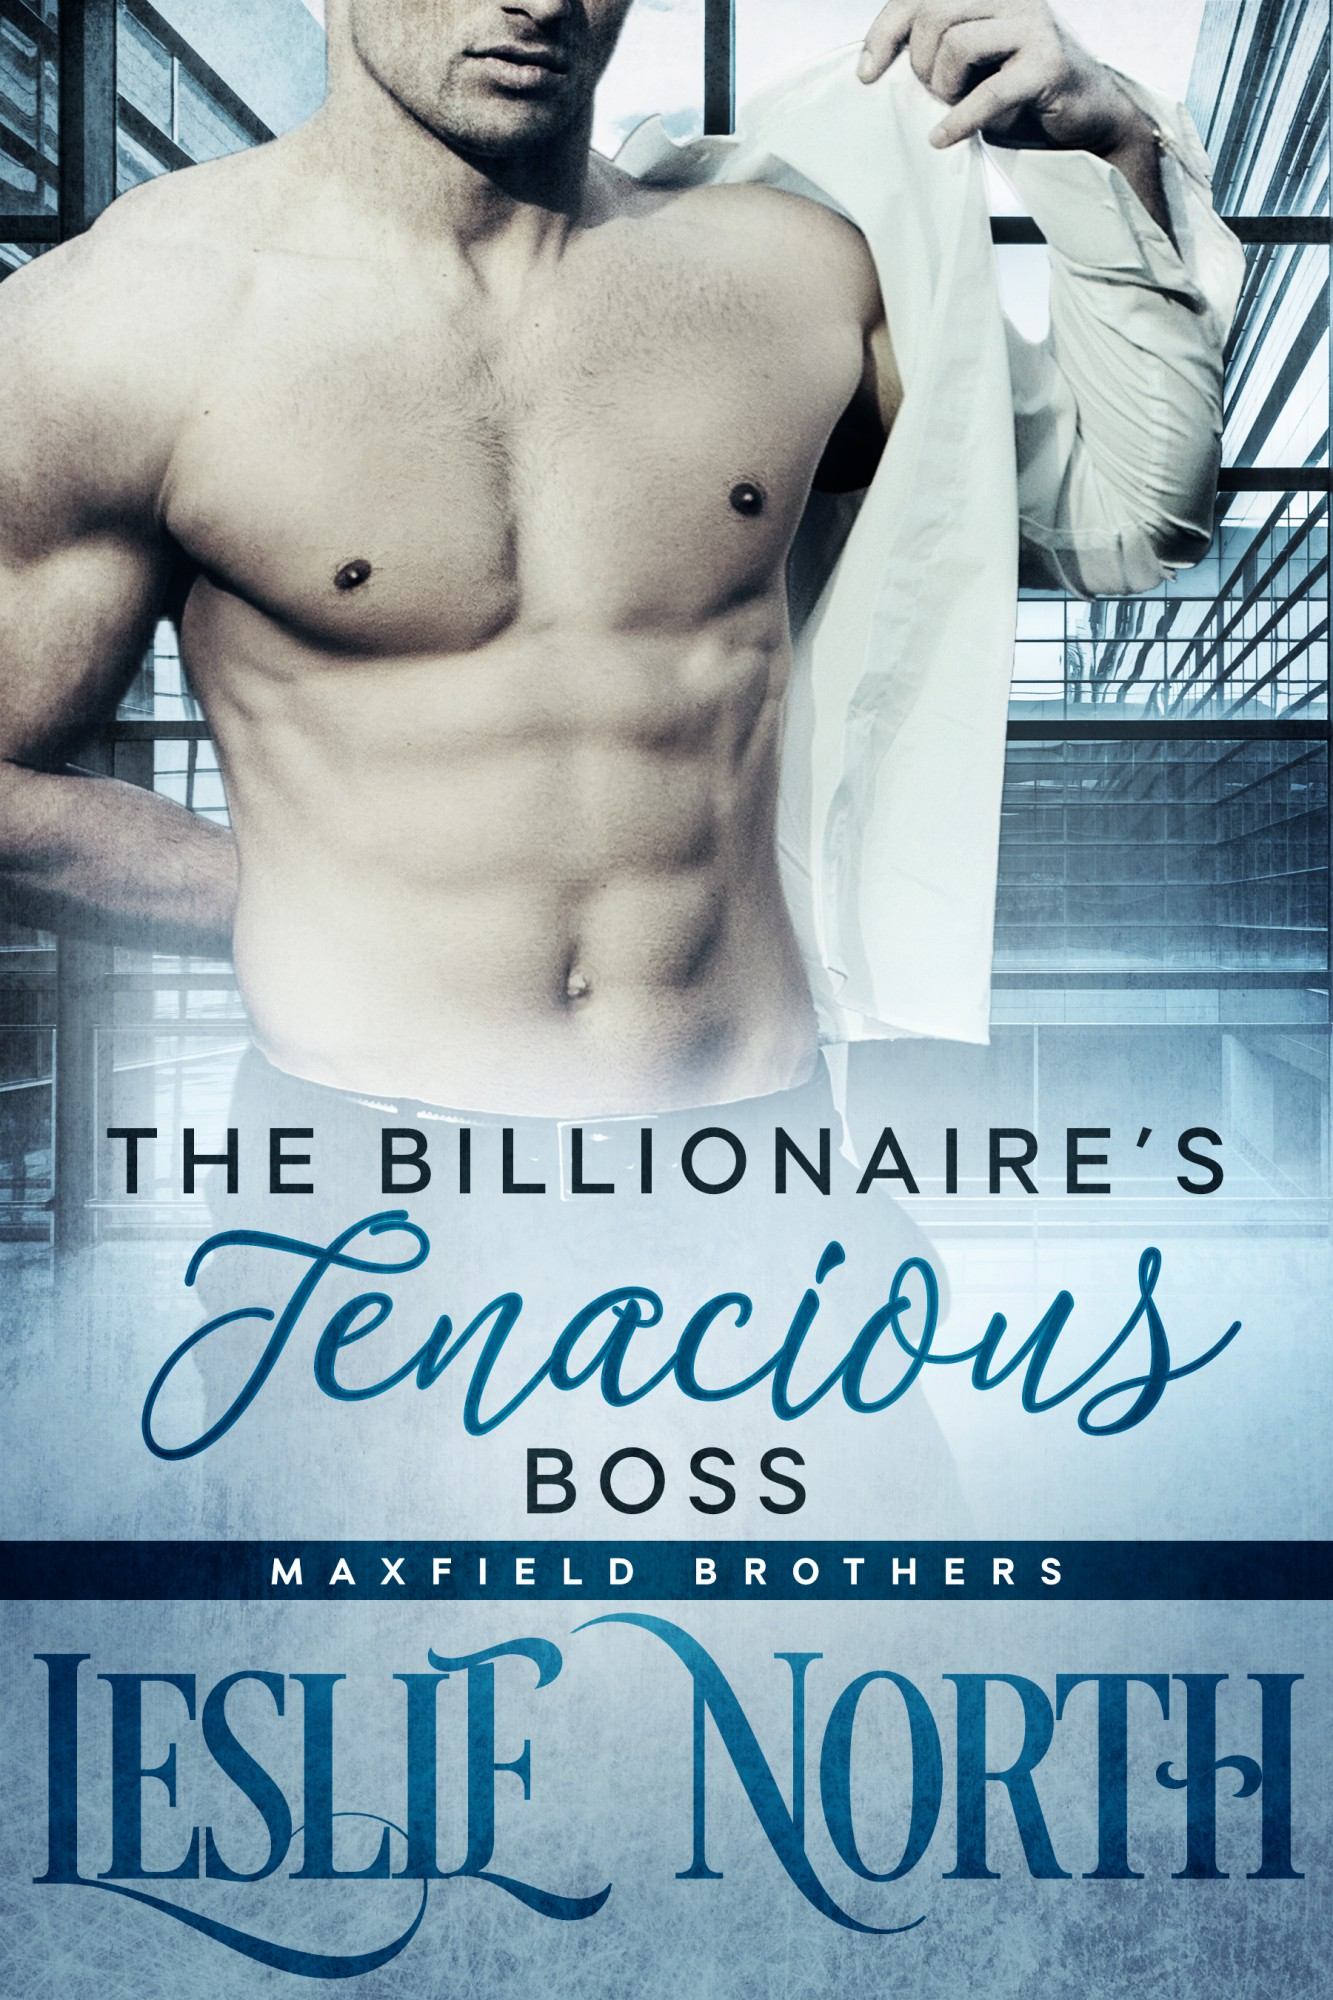 The Billionaire's Tenacious Boss (Maxfield Brothers Series #1)